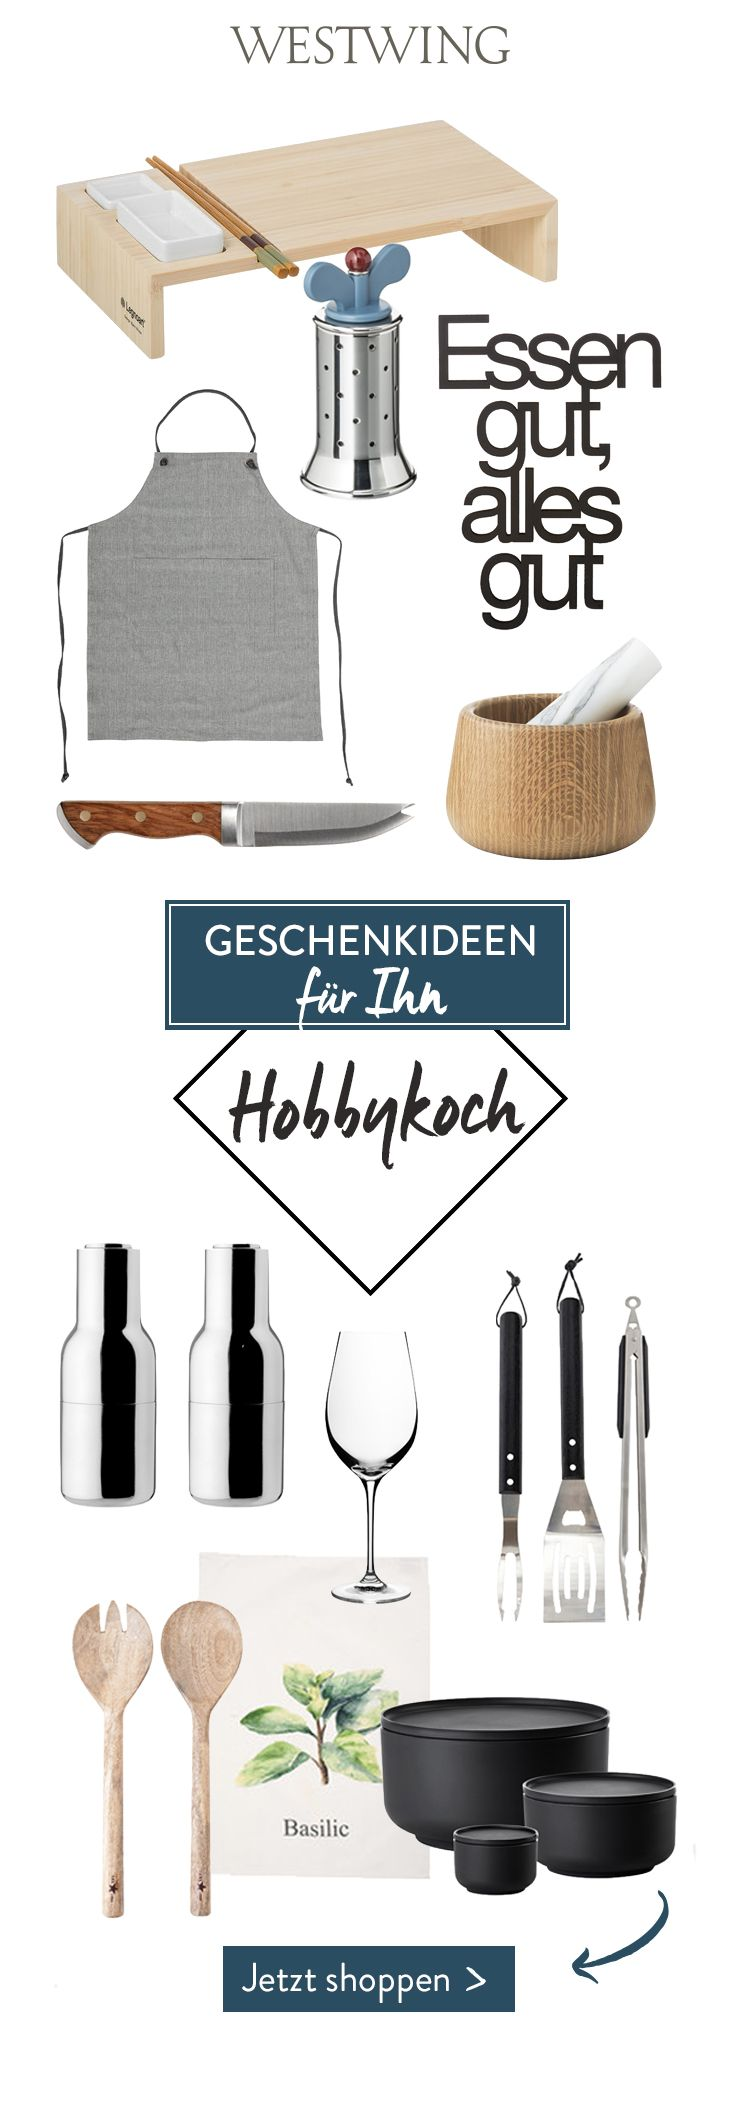 geschenkideen f r ihn hobbykoch dein vater ehemann oder freund liebt es zu kochen und neue. Black Bedroom Furniture Sets. Home Design Ideas